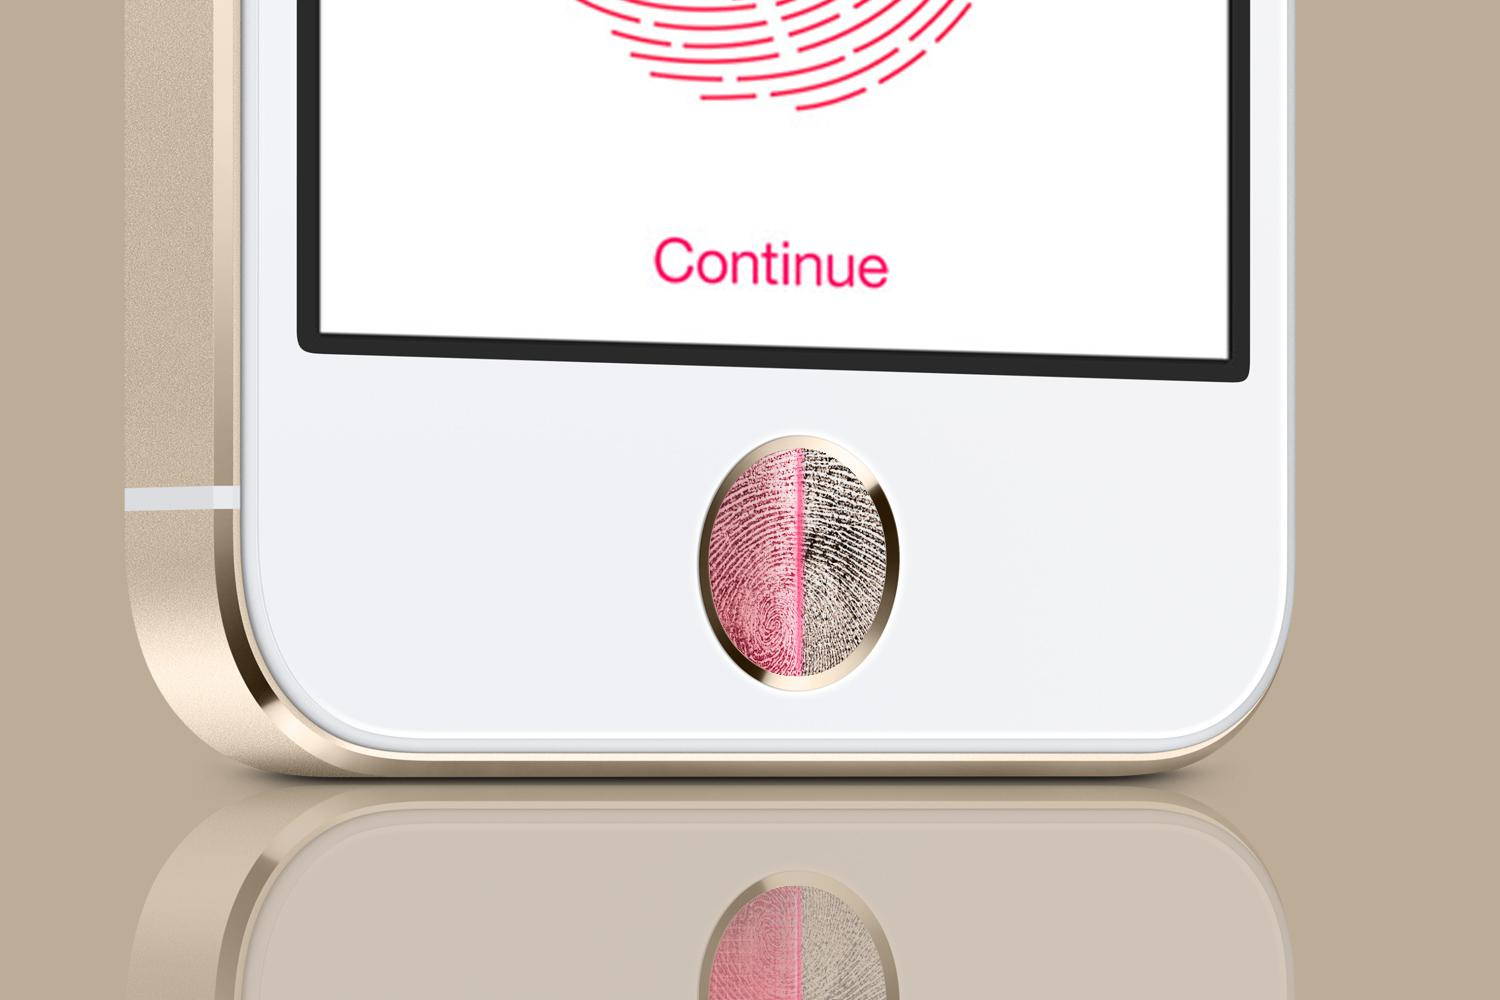 fingerprint lock for iphone 5cApple iPhone 5S Touch ID fingerprint sensor  What you need to know mfT2tA6M